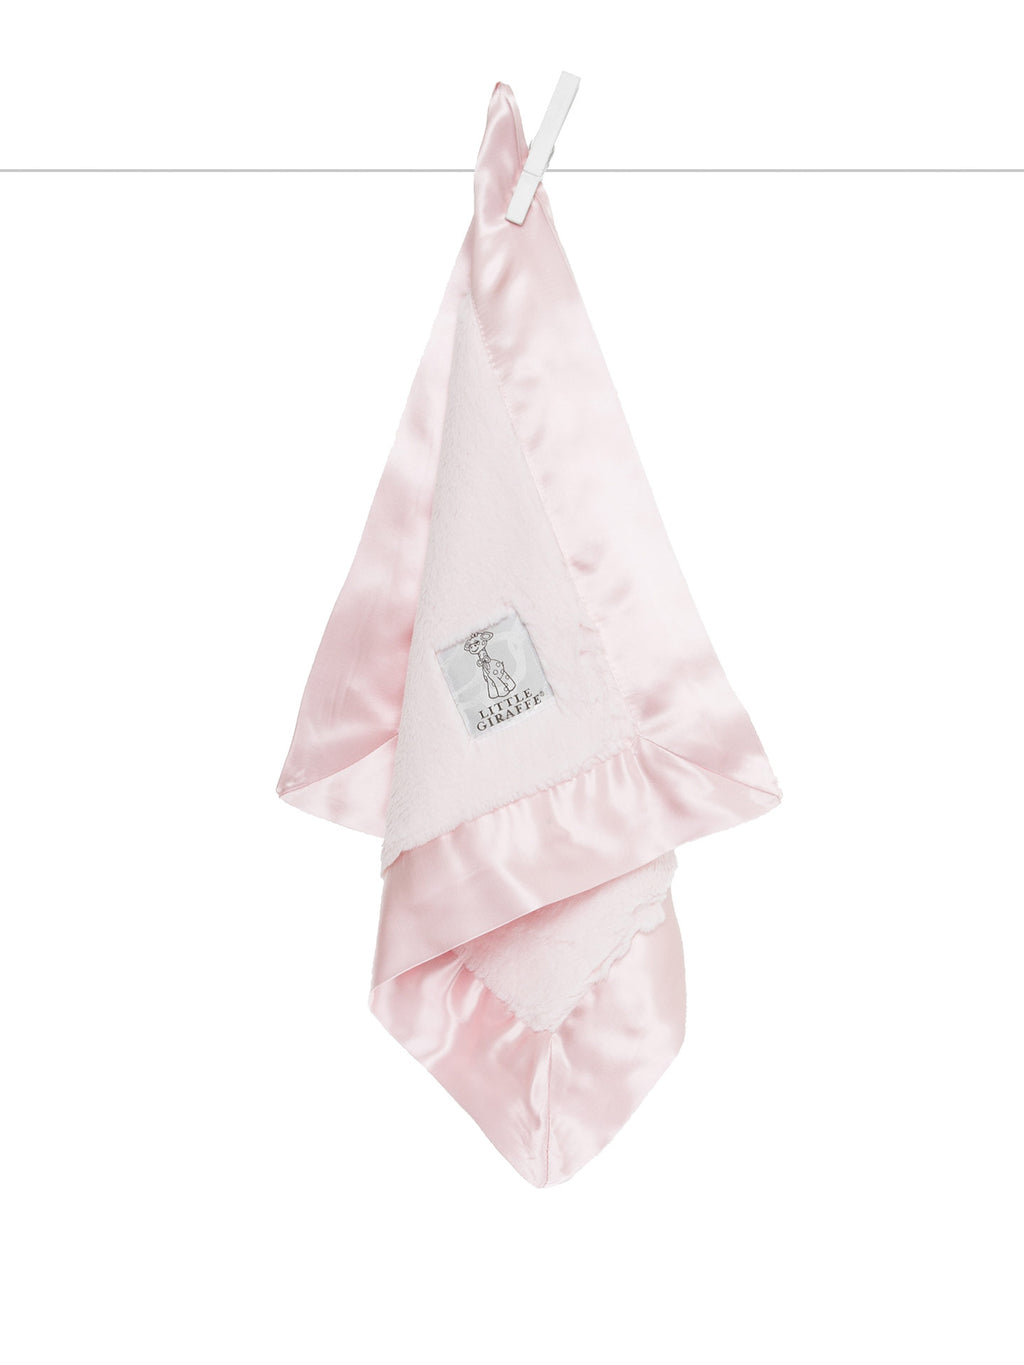 Little Giraffe Luxe Blanky (Multiple Colors)